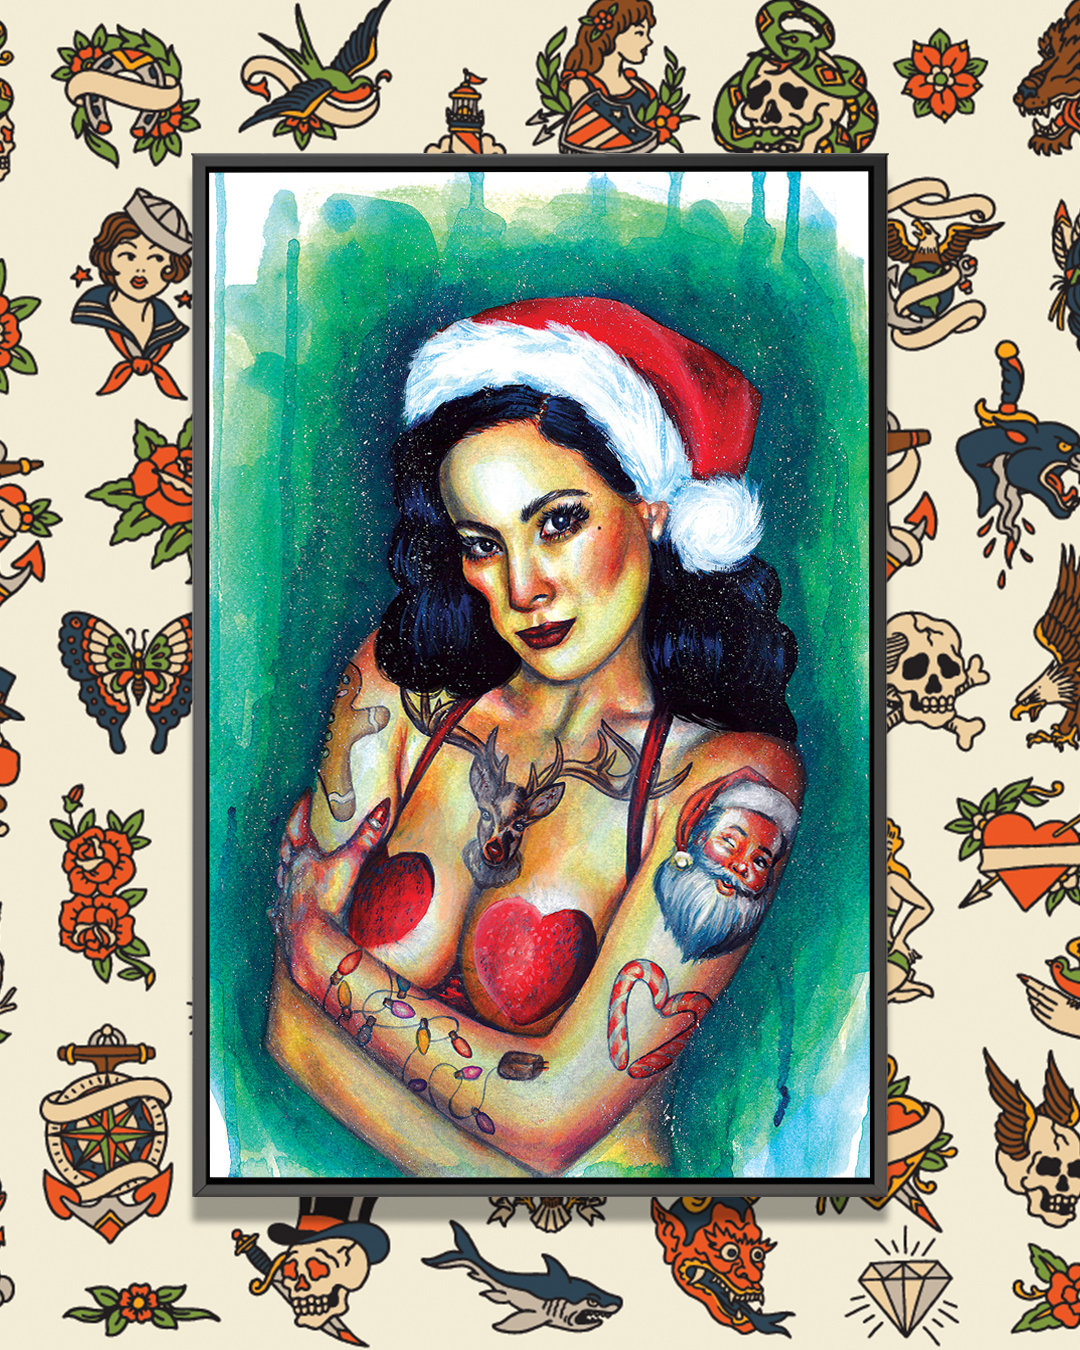 Dark haired female wearing a Santa hat and a red heart shaped bra with Christmas tattoos on her arms